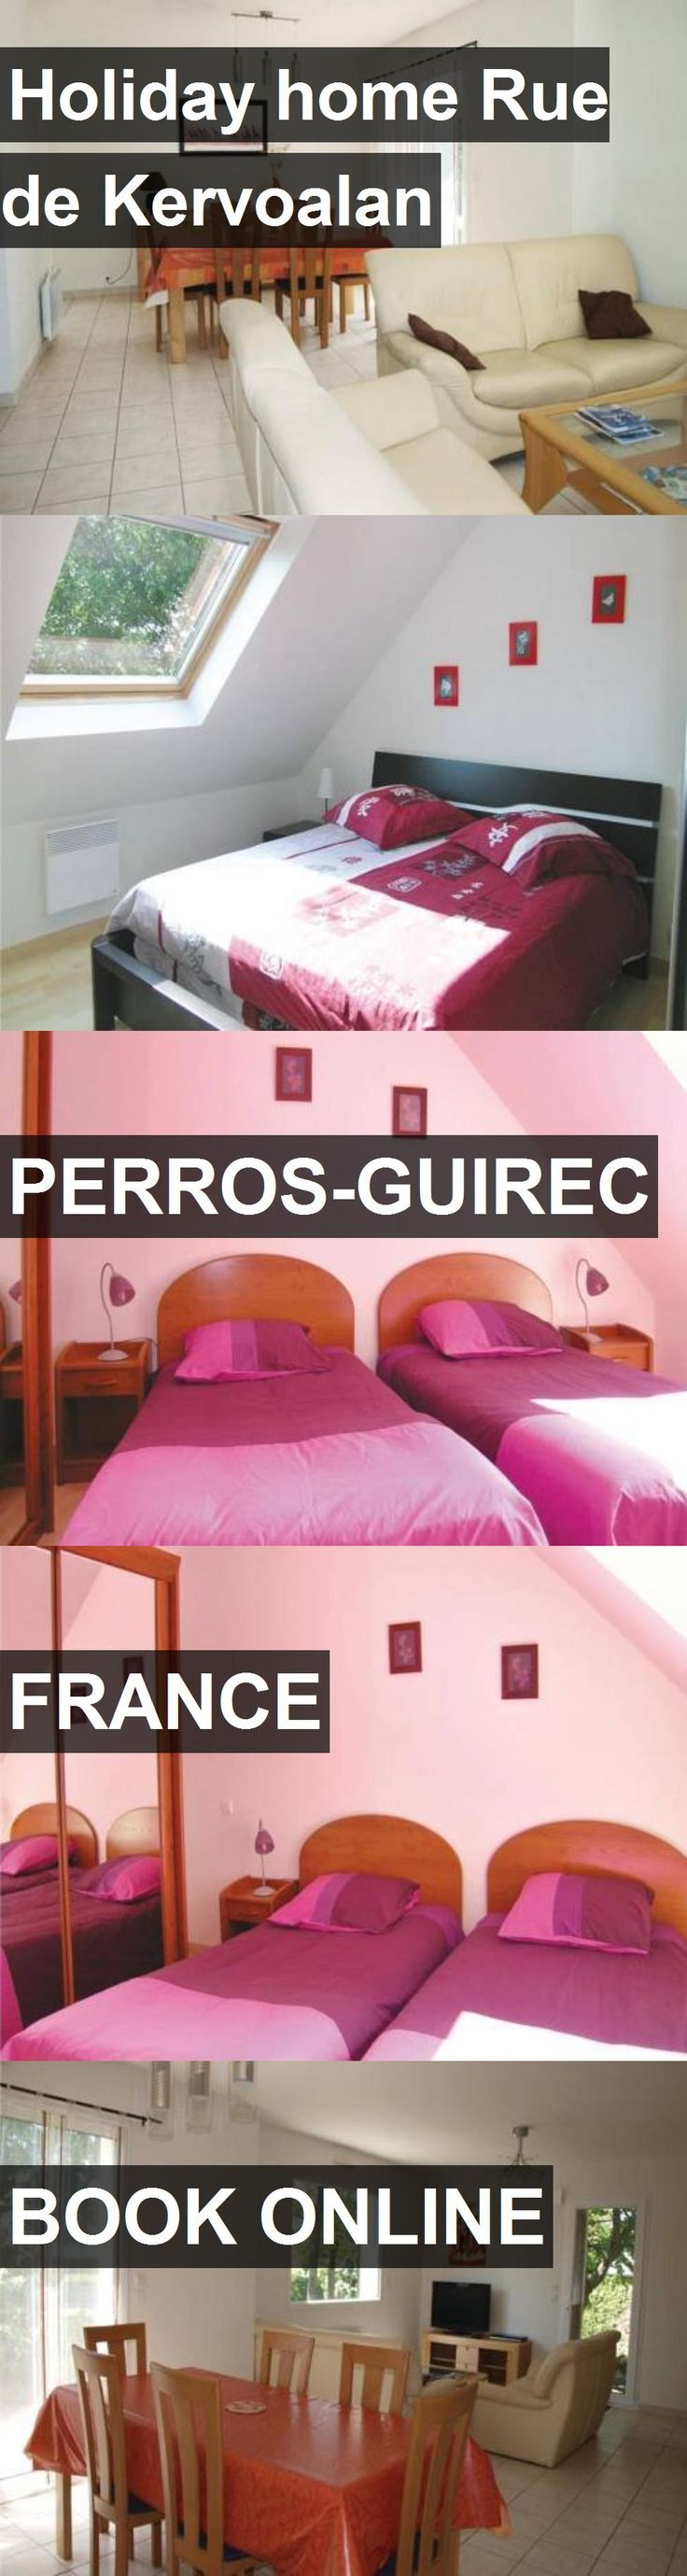 Hotel Holiday home Rue de Kervoalan in Perros-Guirec, France. For more information, photos, reviews and best prices please follow the link. #France #Perros-Guirec #travel #vacation #hotel